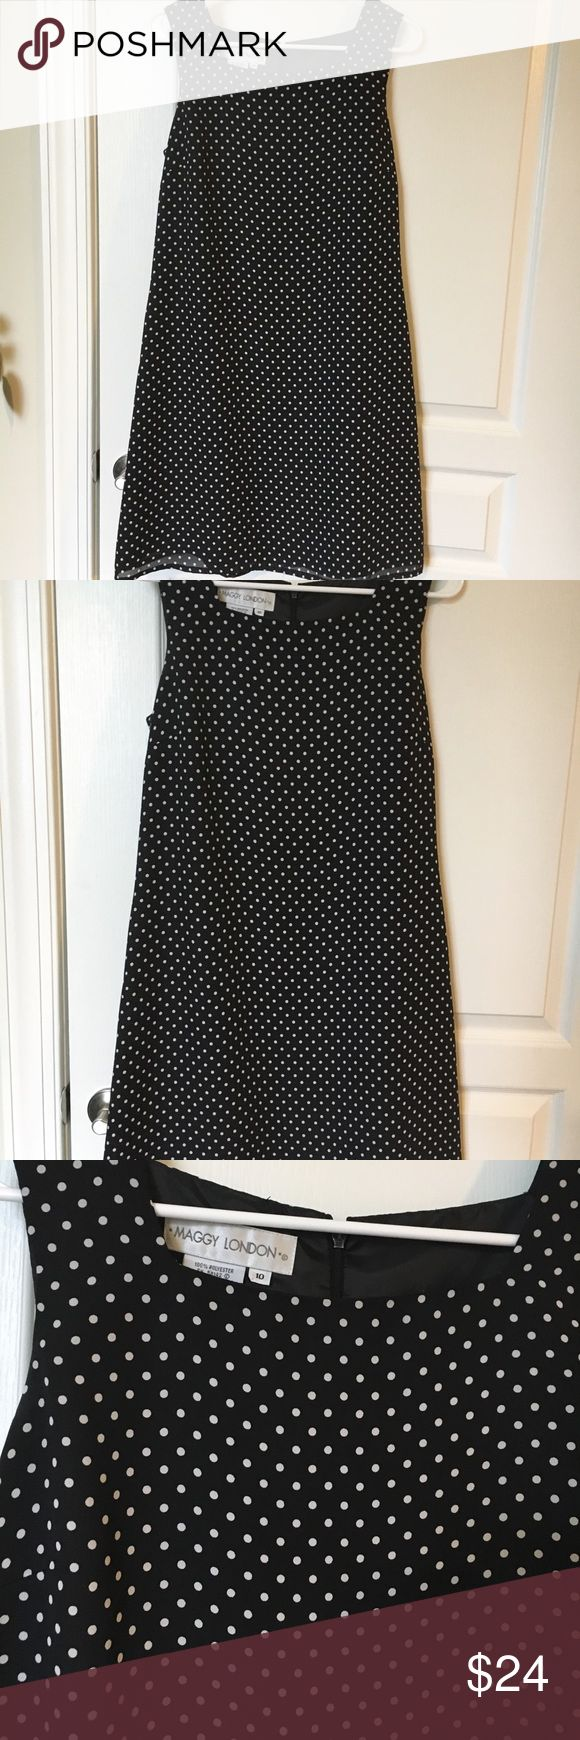 Maggy London black and white polka dot dress Pretty black/white polka dot dress. Can be business casual for work, to wear to a wedding, or just for the weekend! I️ offer discounts for bundles and welcome offers :) Maggy London Dresses